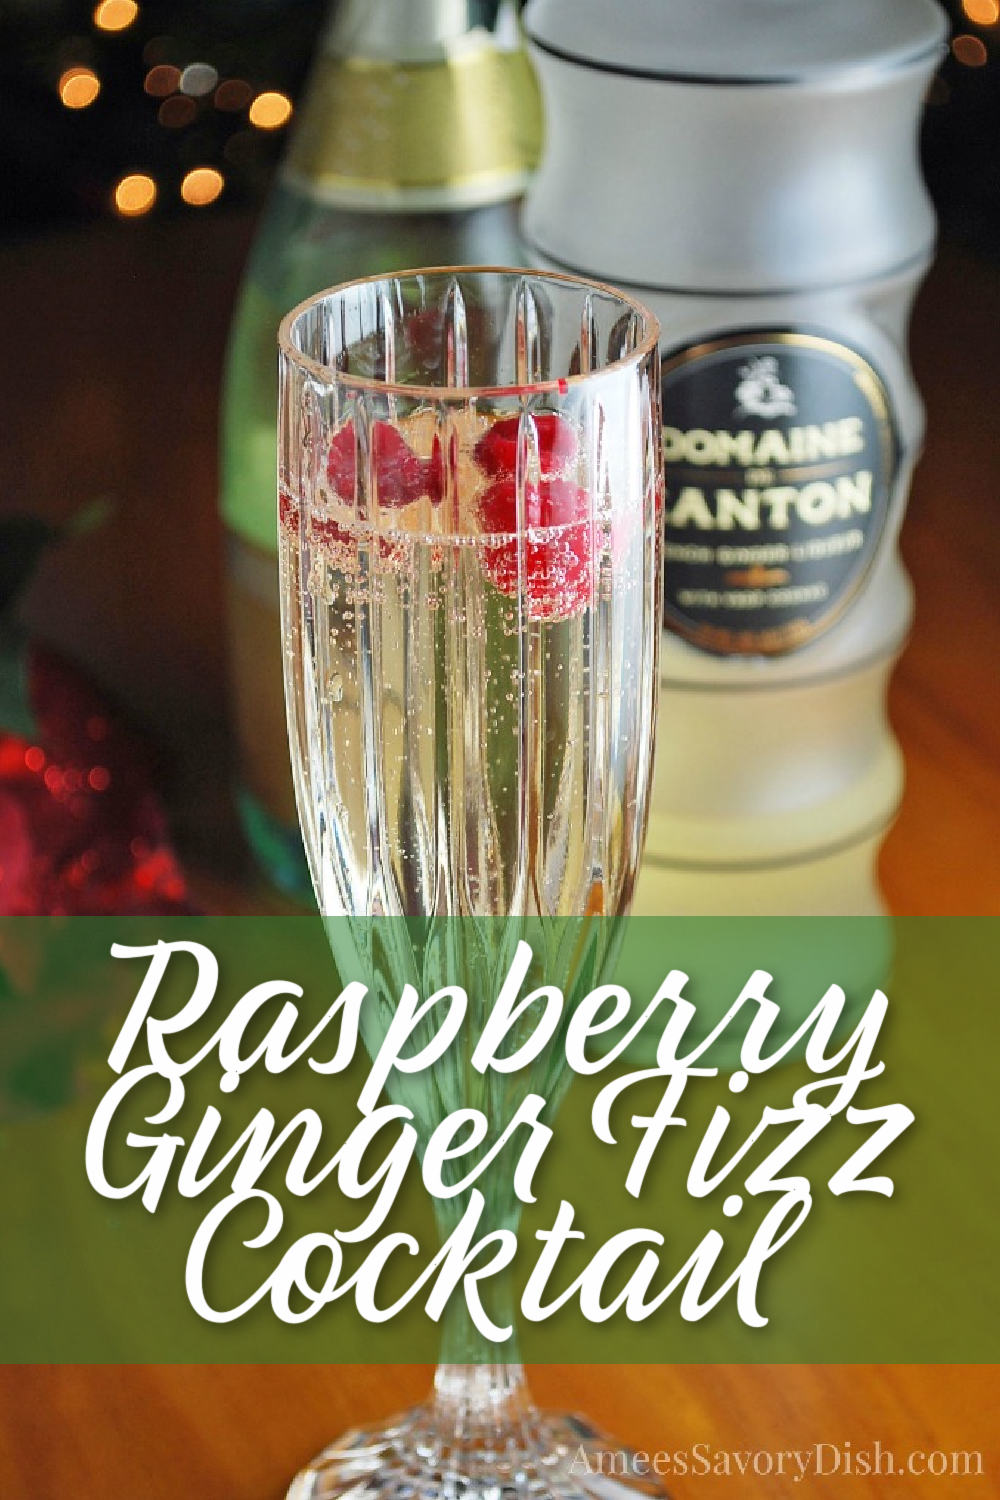 Raspberry Ginger Fizz is a festive holiday cocktail made with sparkling white wine, ginger liqueur, and fresh raspberries. #proseccococktail #cocktailrecipe #holidaycocktail #holidayentertaining via @Ameessavorydish